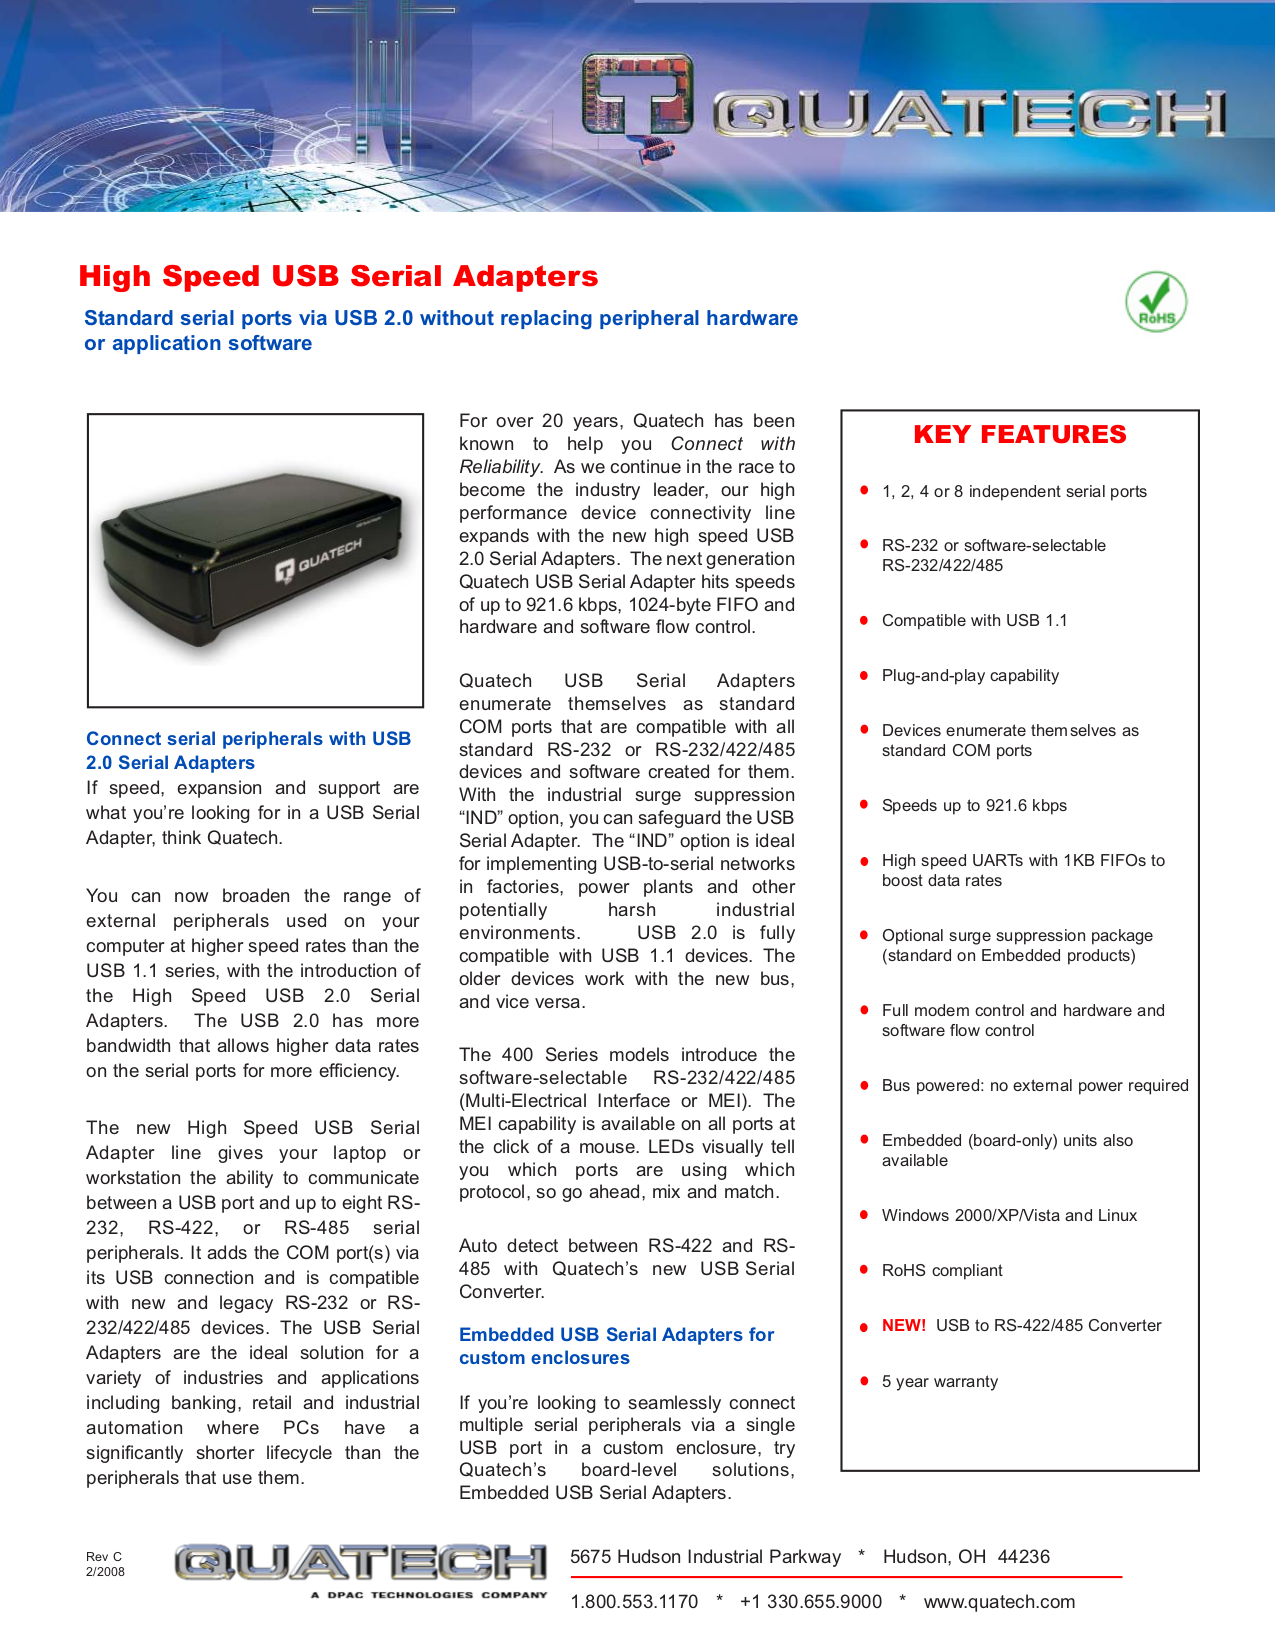 pdf for Quatech Other QSU-100-EMB Adapters manual